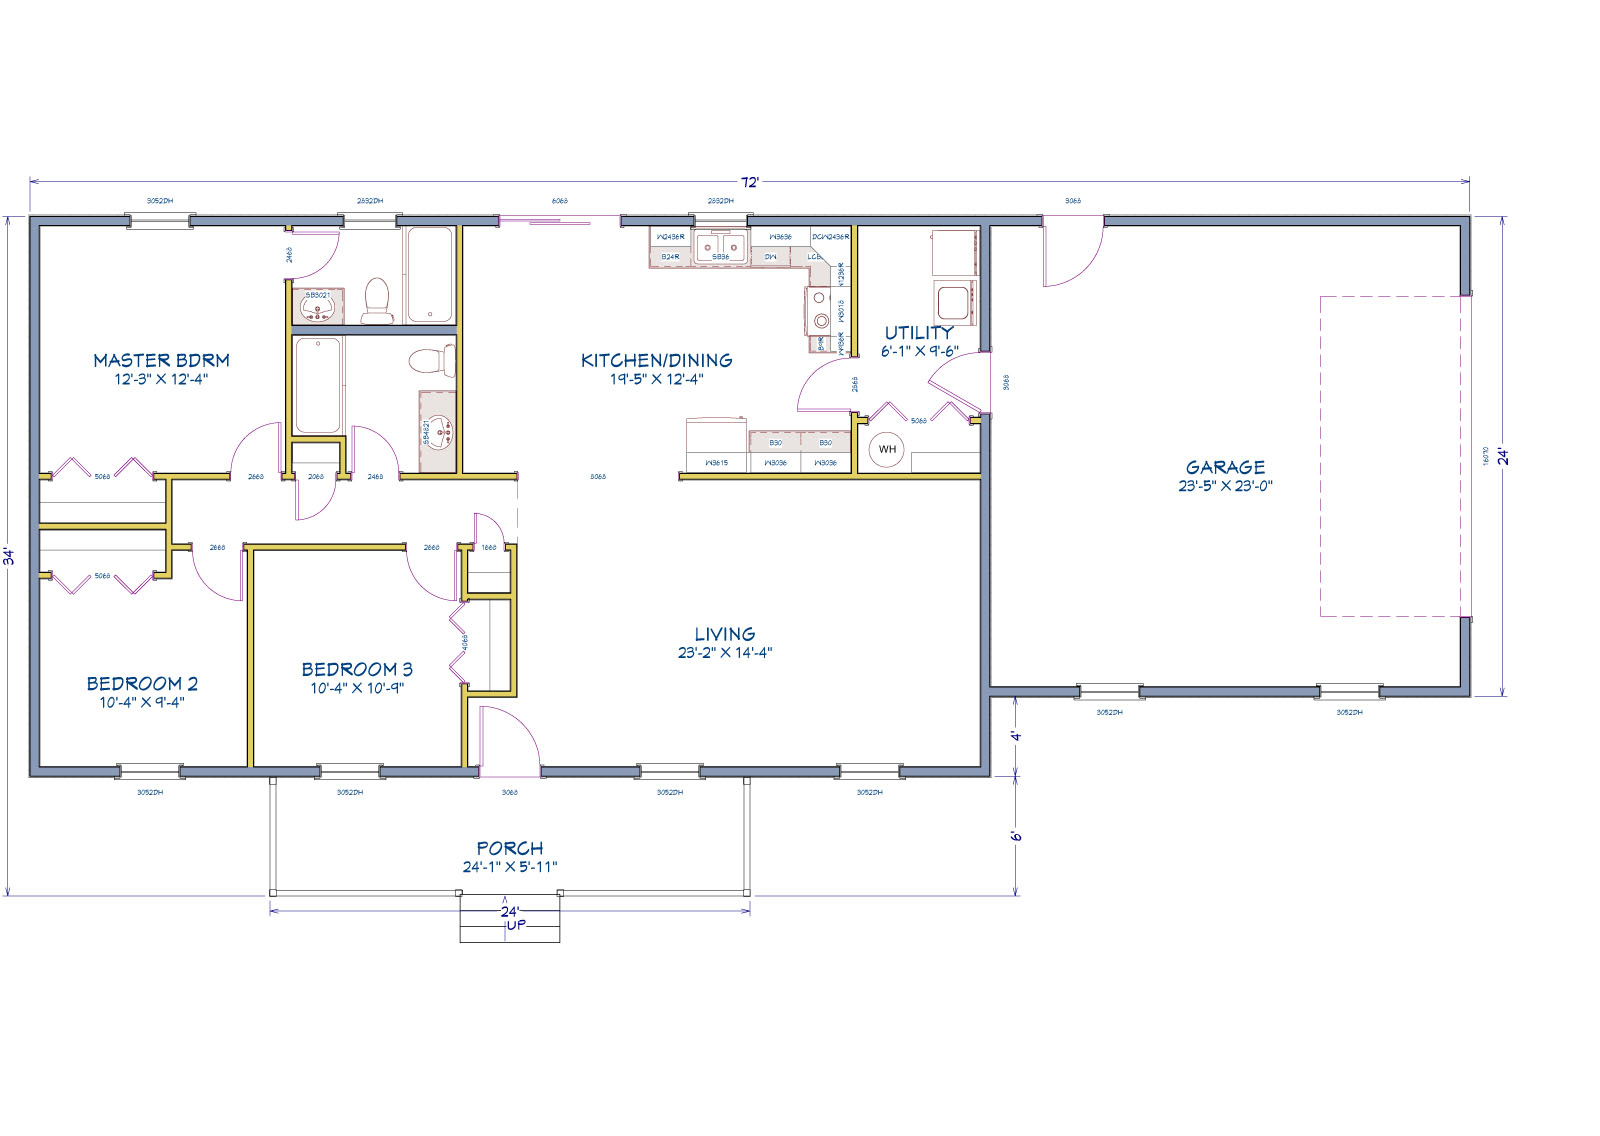 House plan drawing for the Caroline II Floor Plan